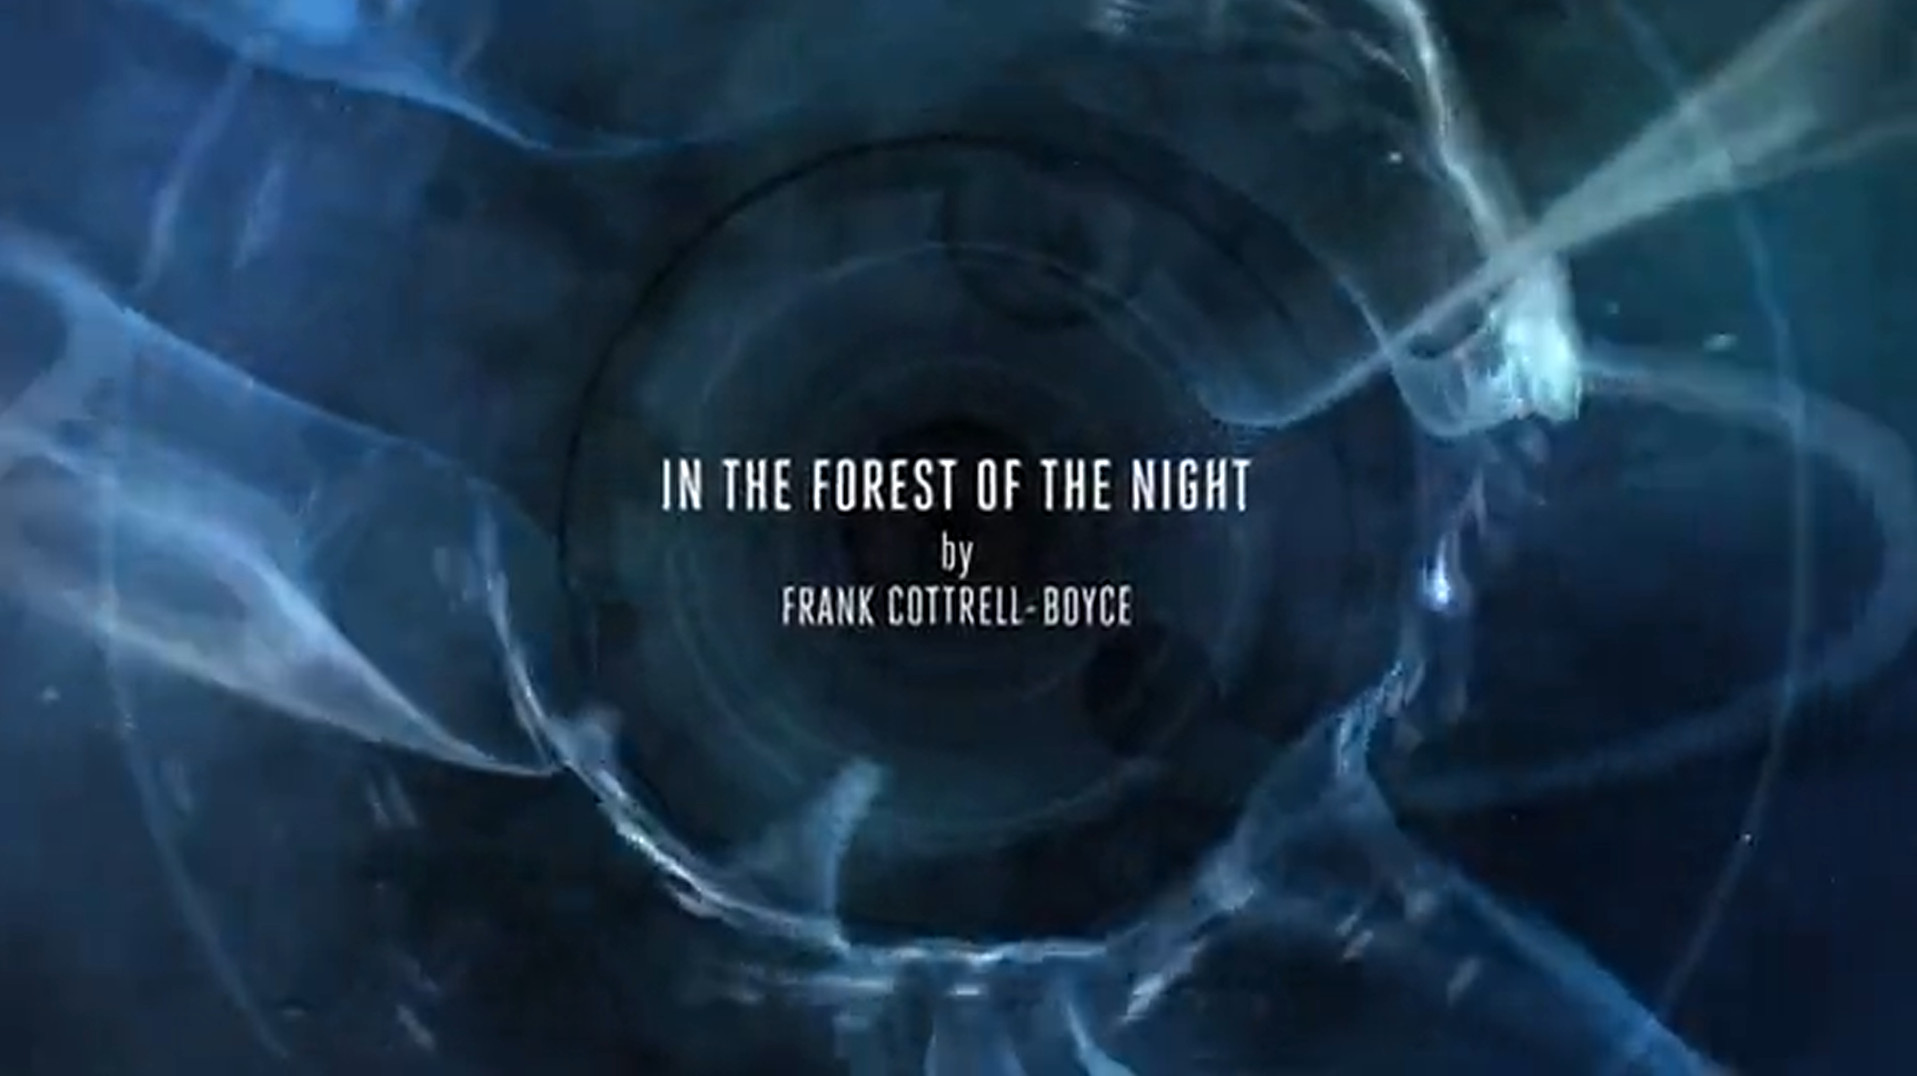 In the Forest of the Night (Inhaltsangabe)